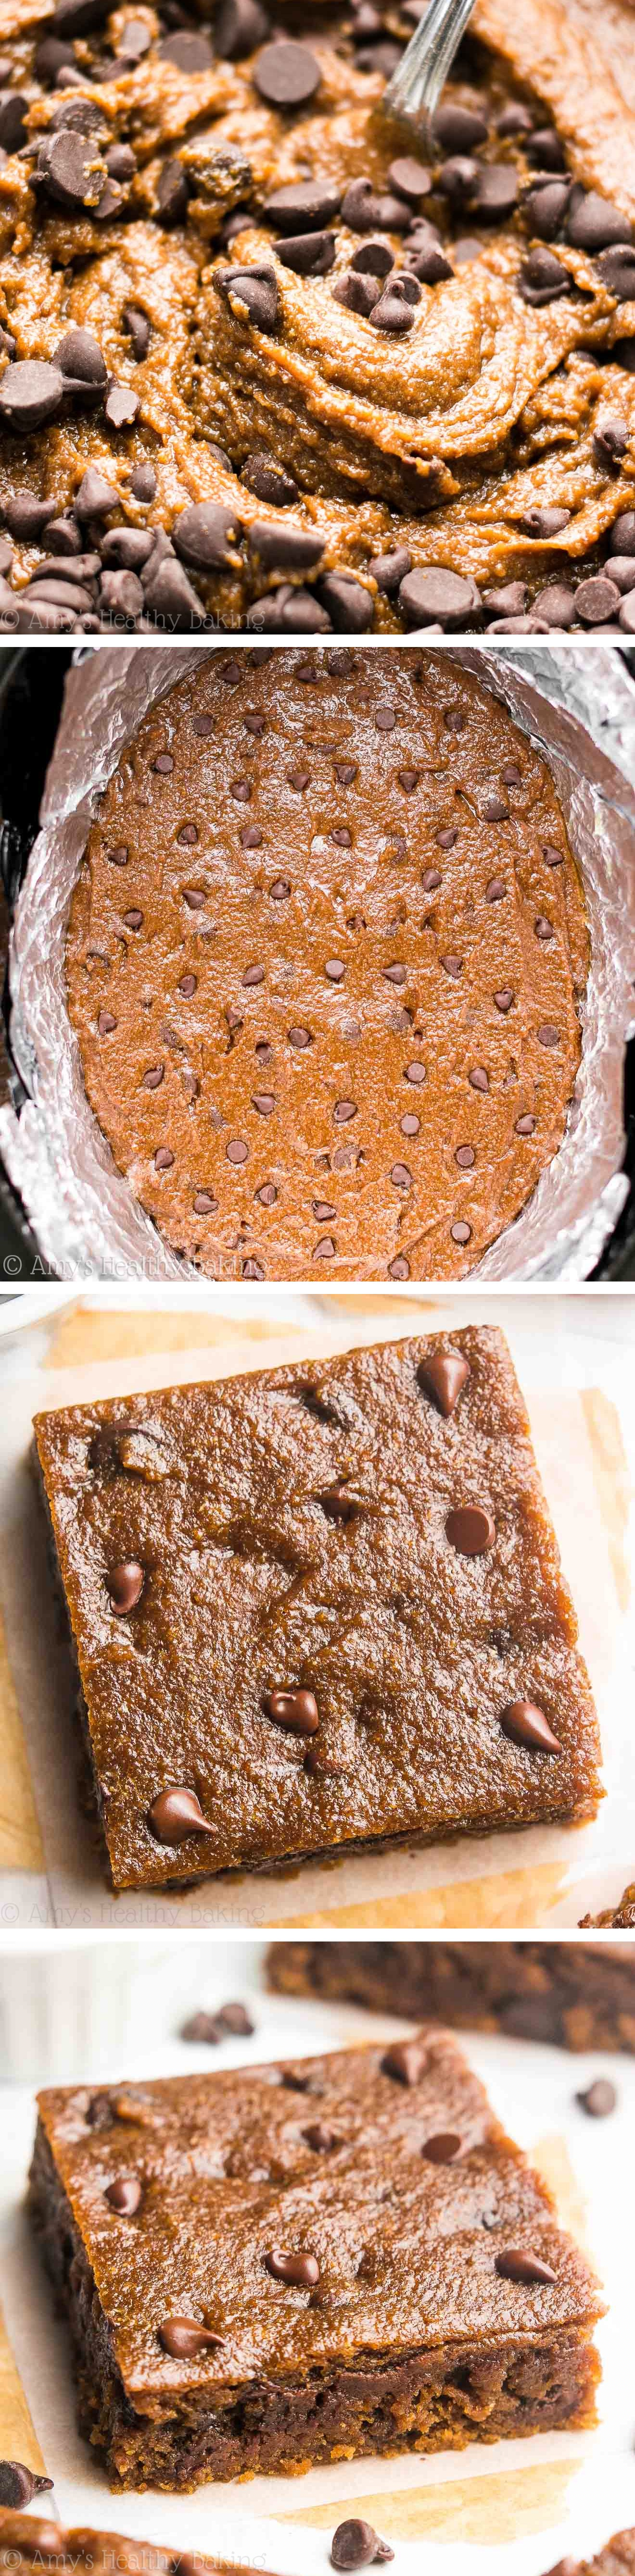 Skinny Slow Cooker Chocolate Chip Cookie Bars | Amy's Healthy Baking